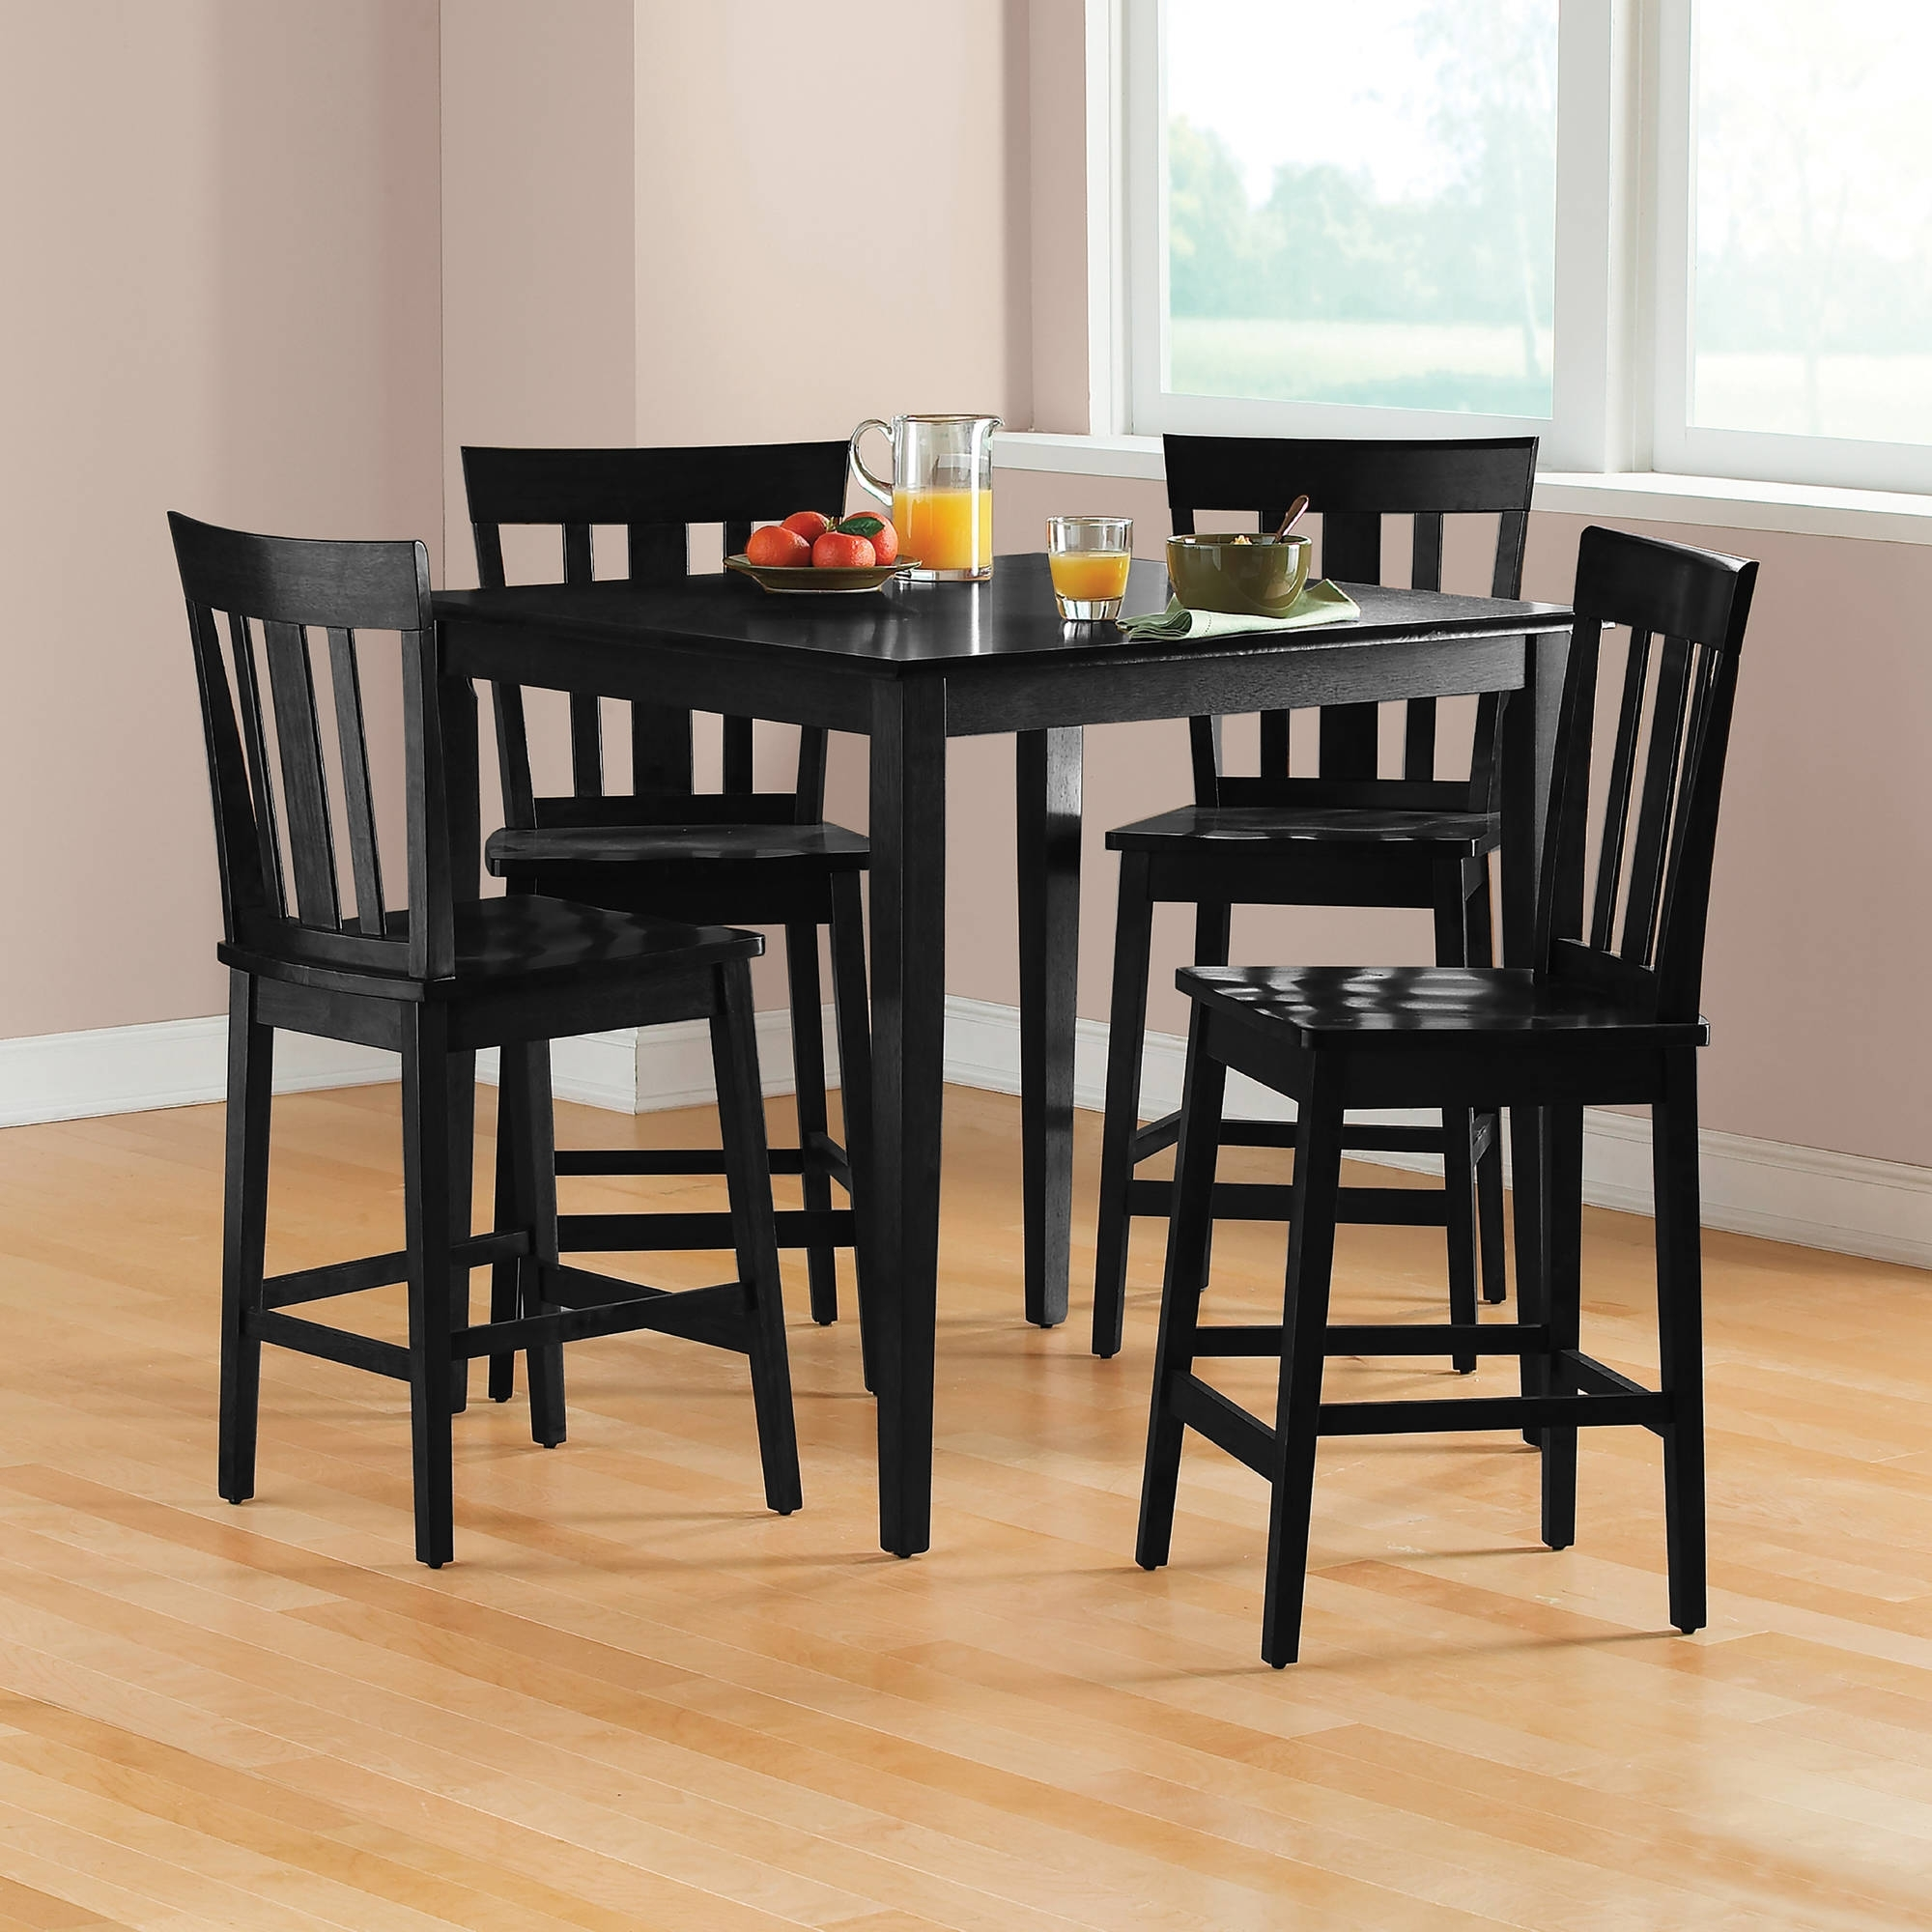 Mainstays 5 Piece Mission Counter Height Dining Set – Walmart Inside Latest Cheap Dining Room Chairs (View 16 of 25)